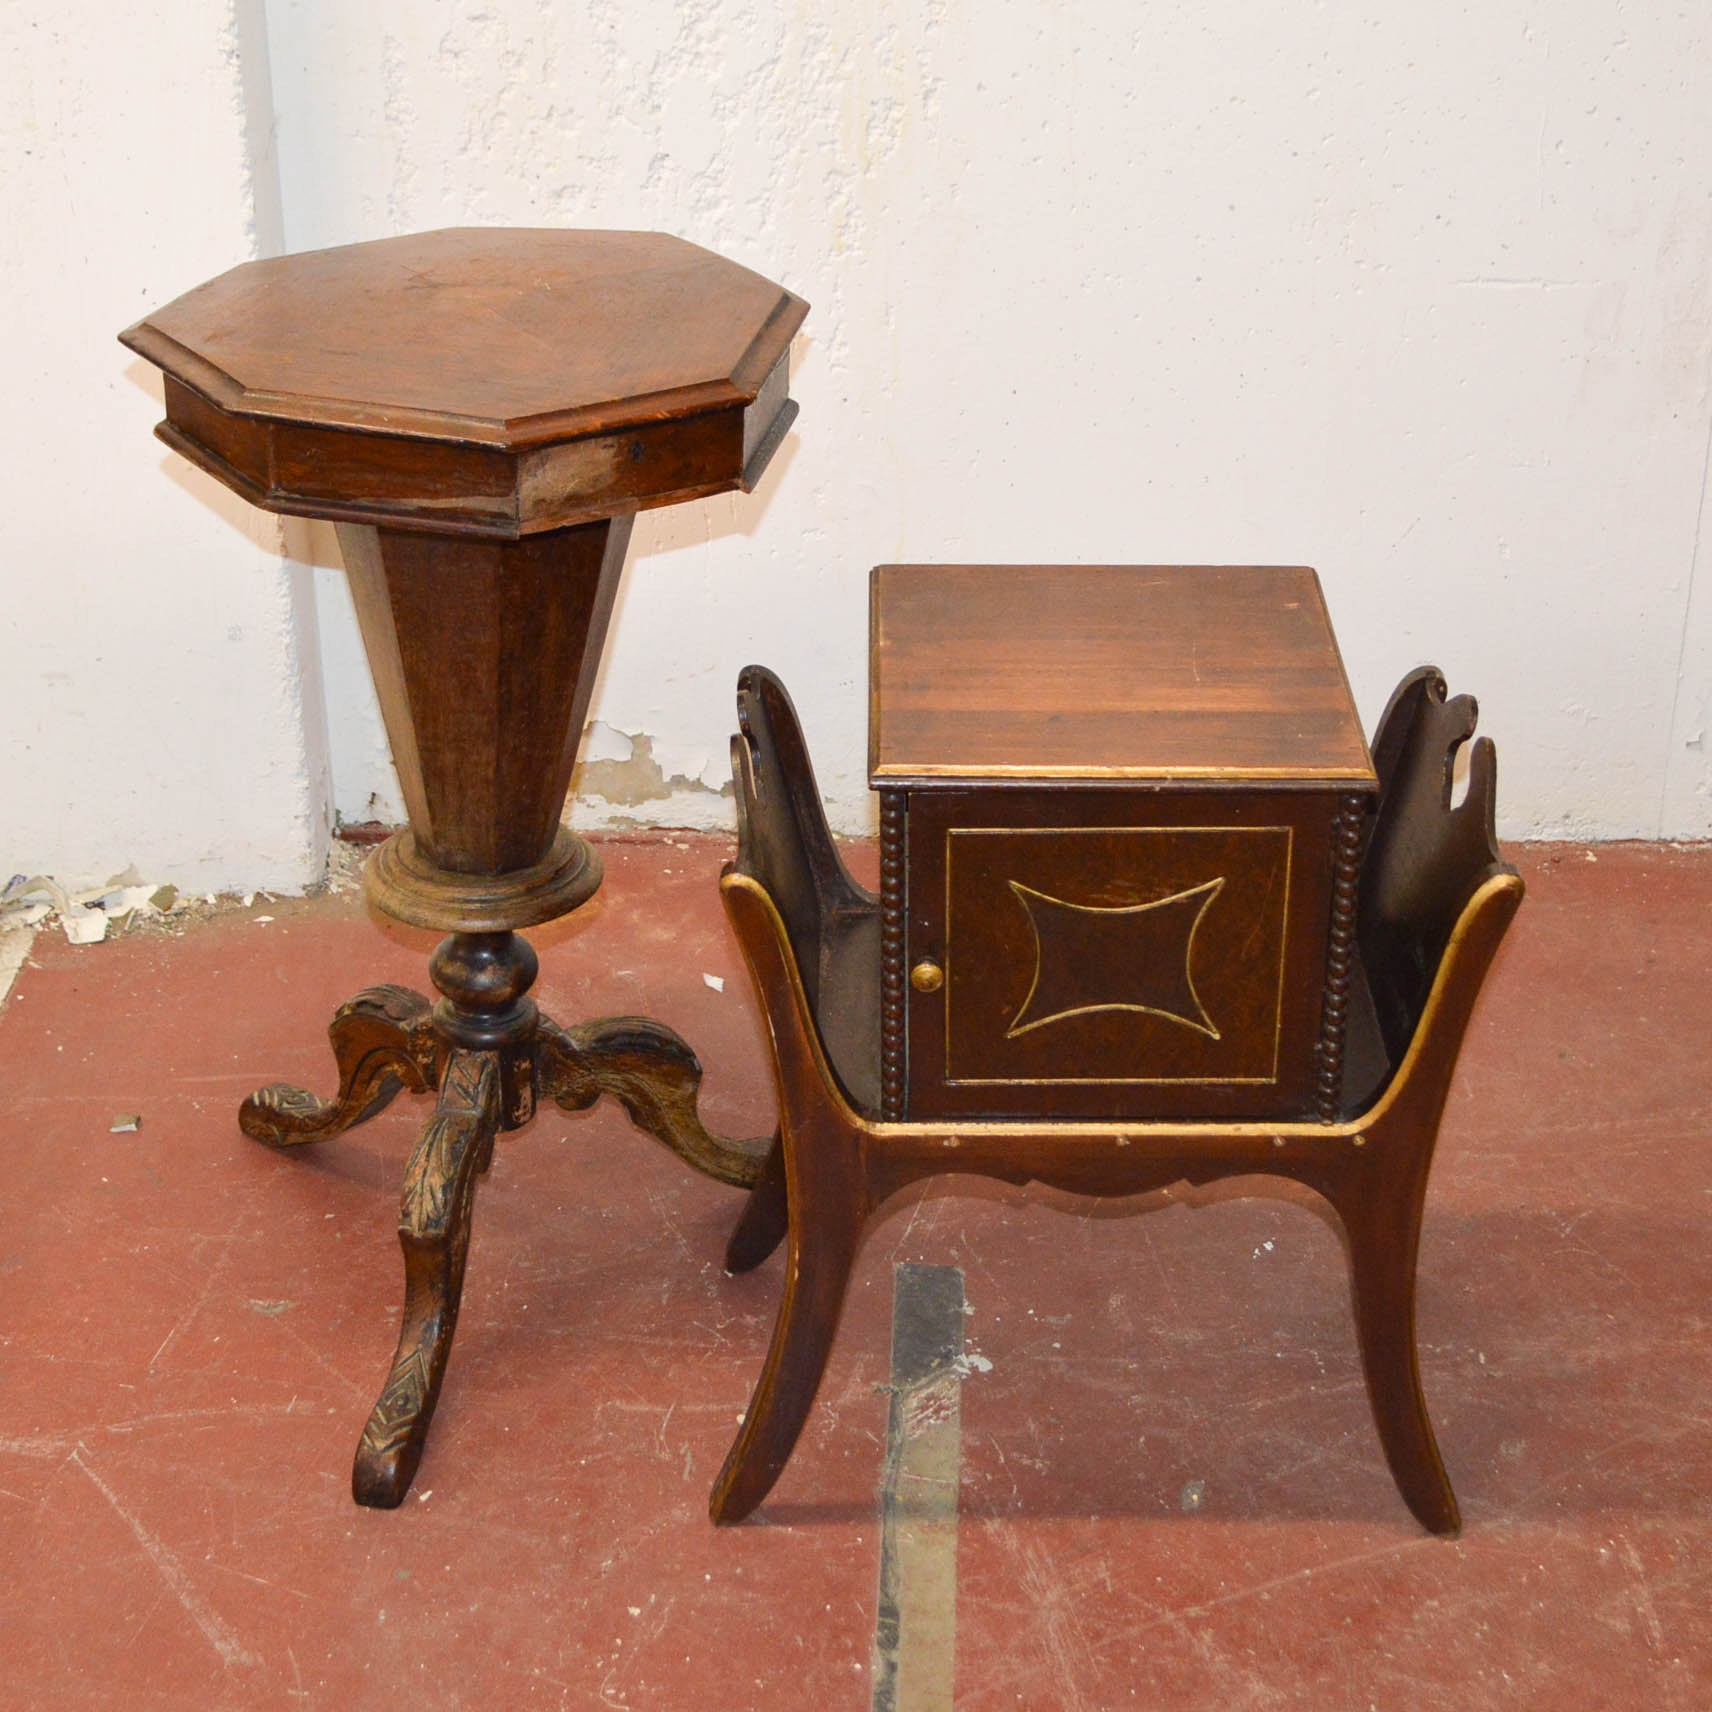 Antique European Sewing Stand